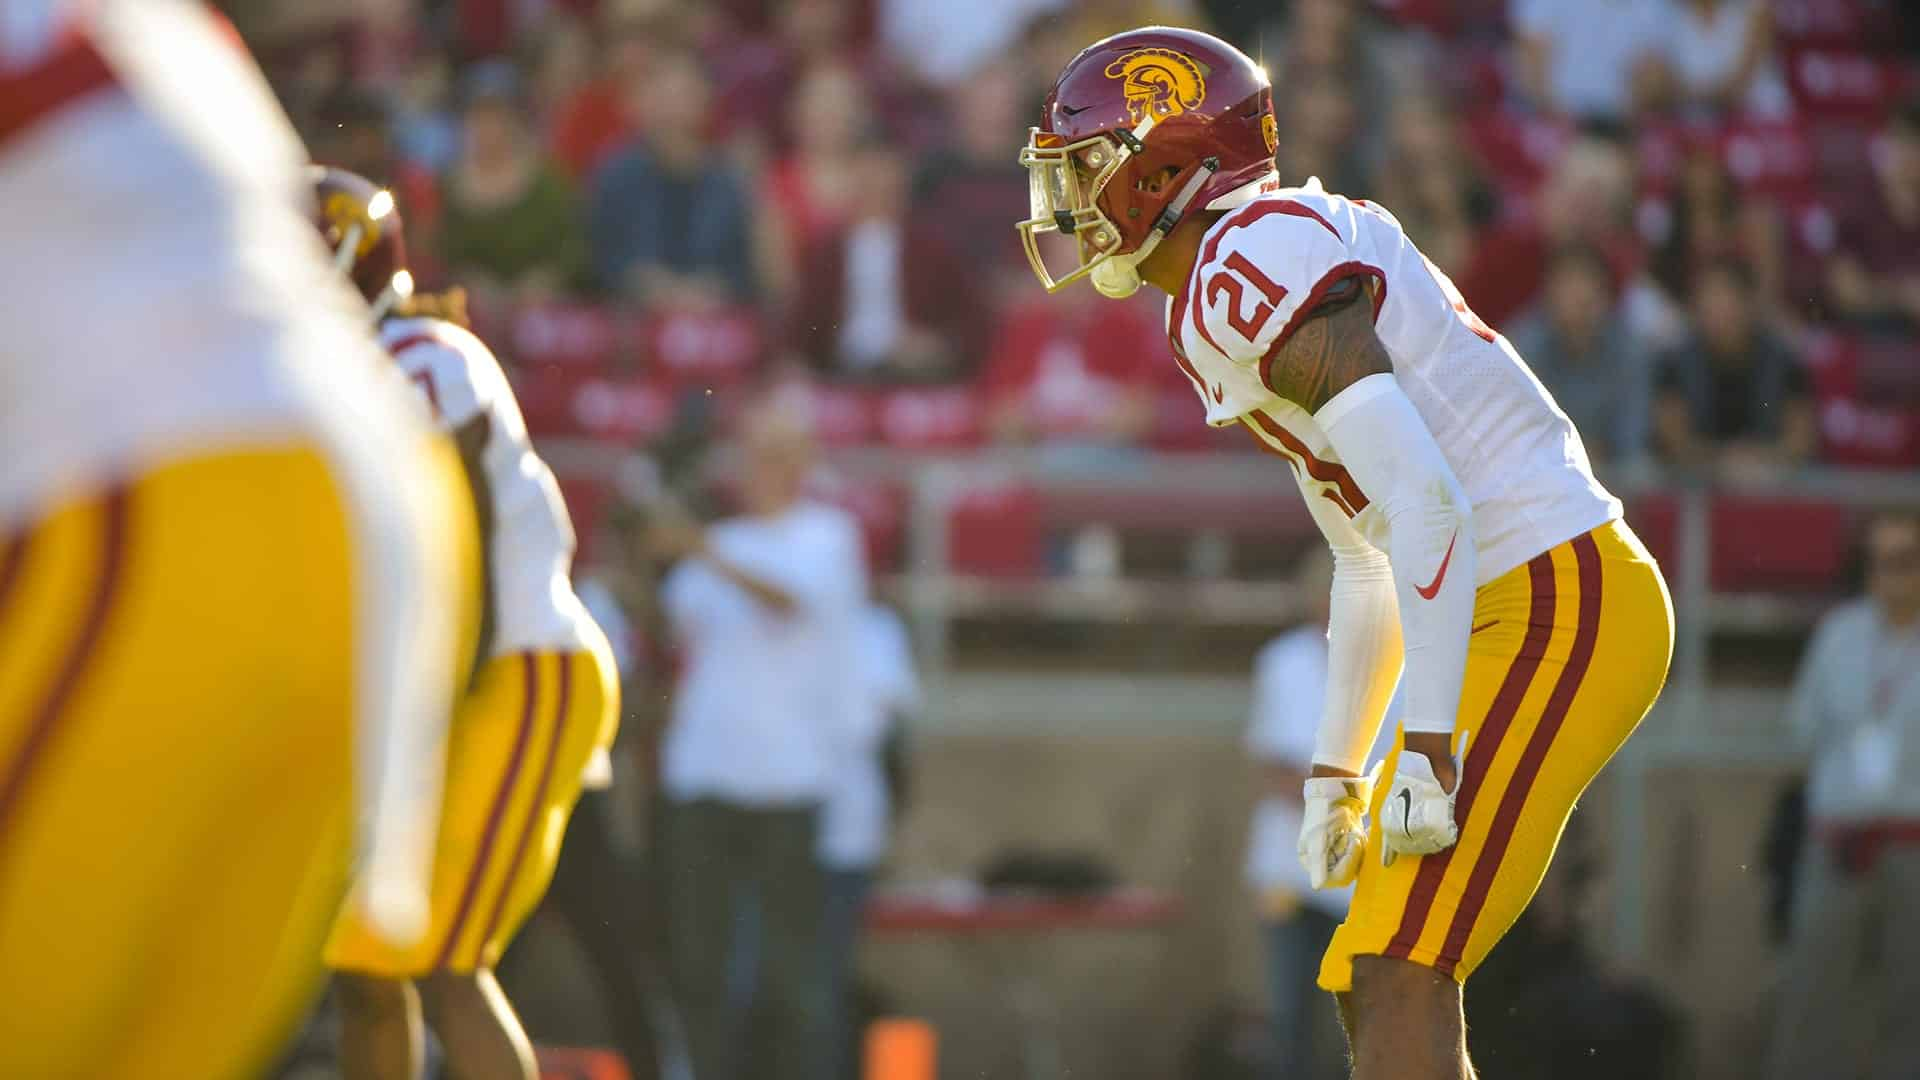 Despite rich football bloodlines, USC safety Isaiah Pola-Mao flies under the radar